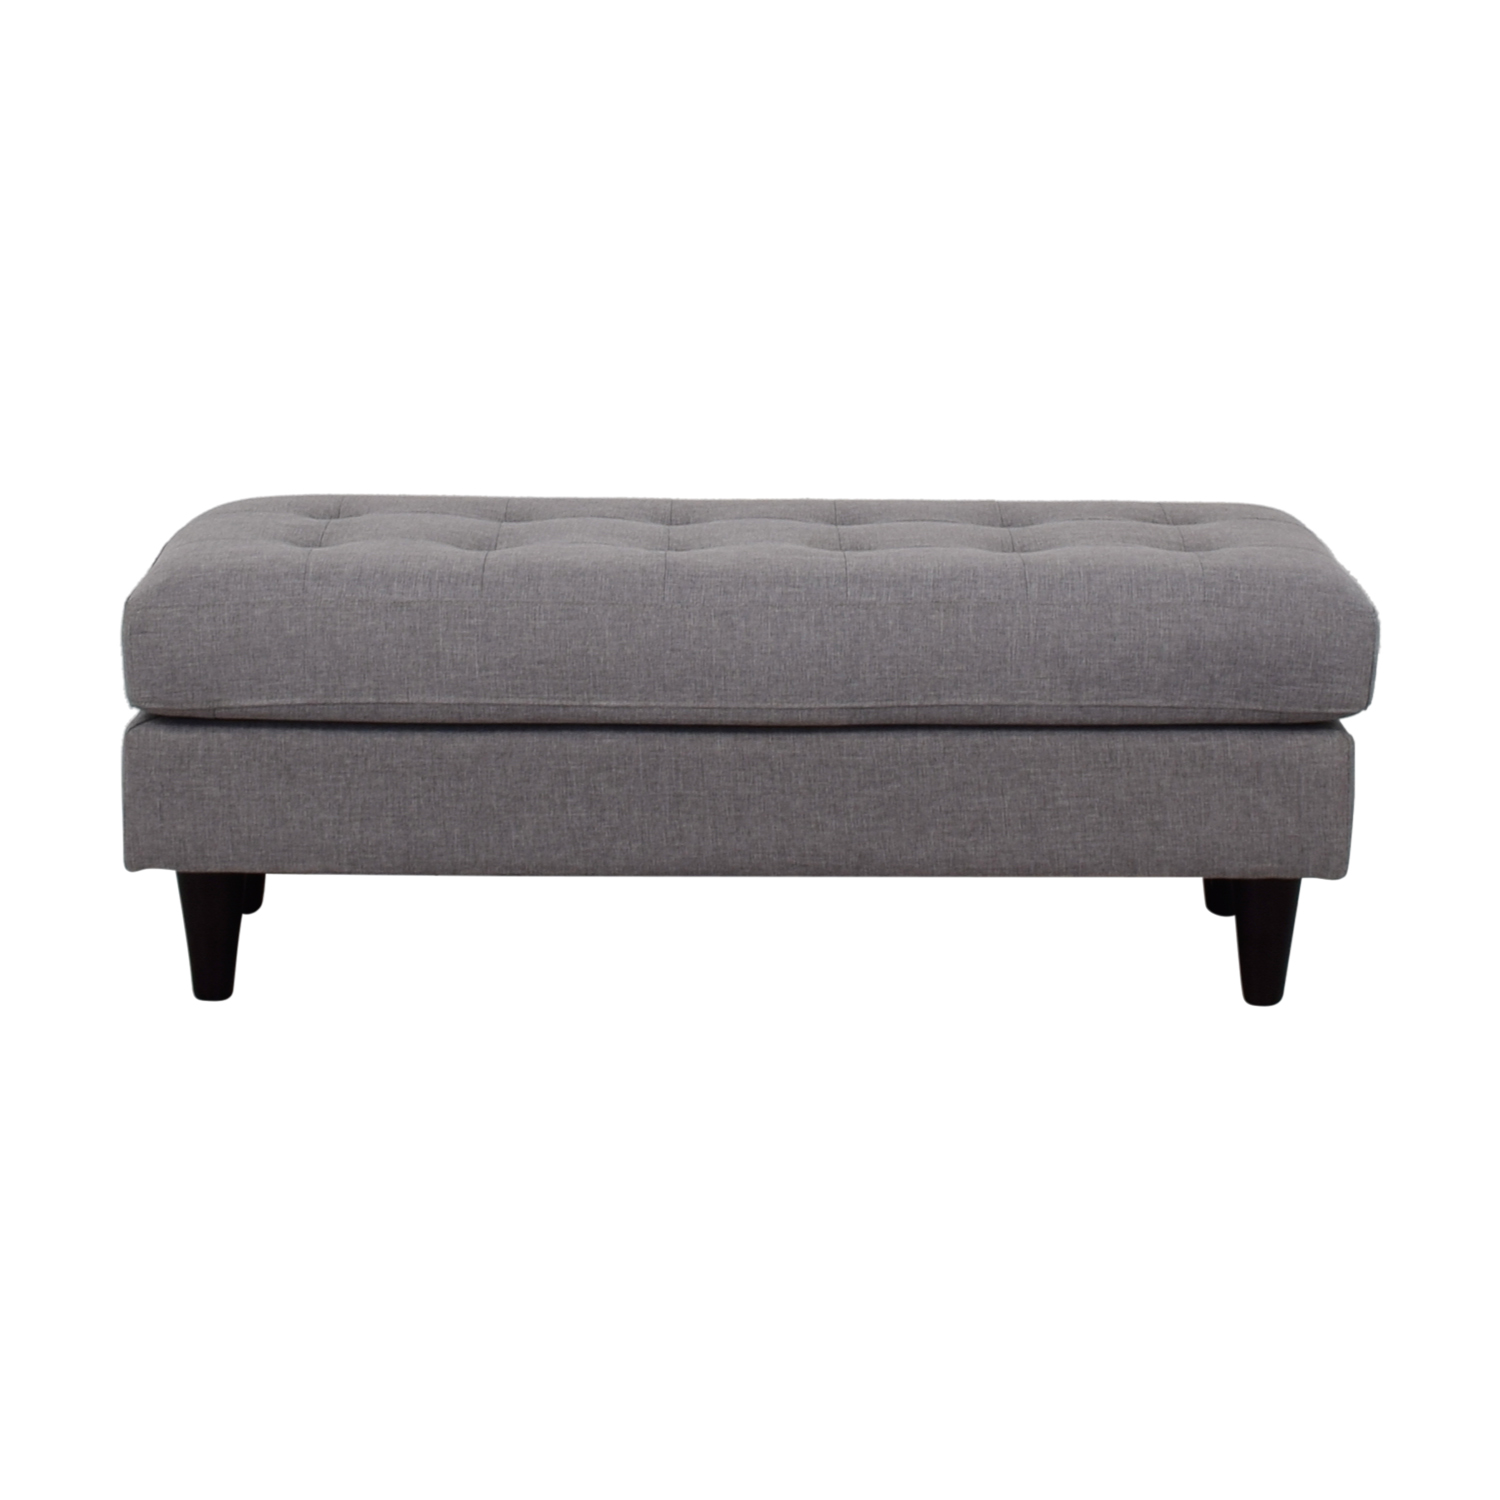 63% OFF - Modway Modway Grey Tufted Upholstered Bench / Chairs